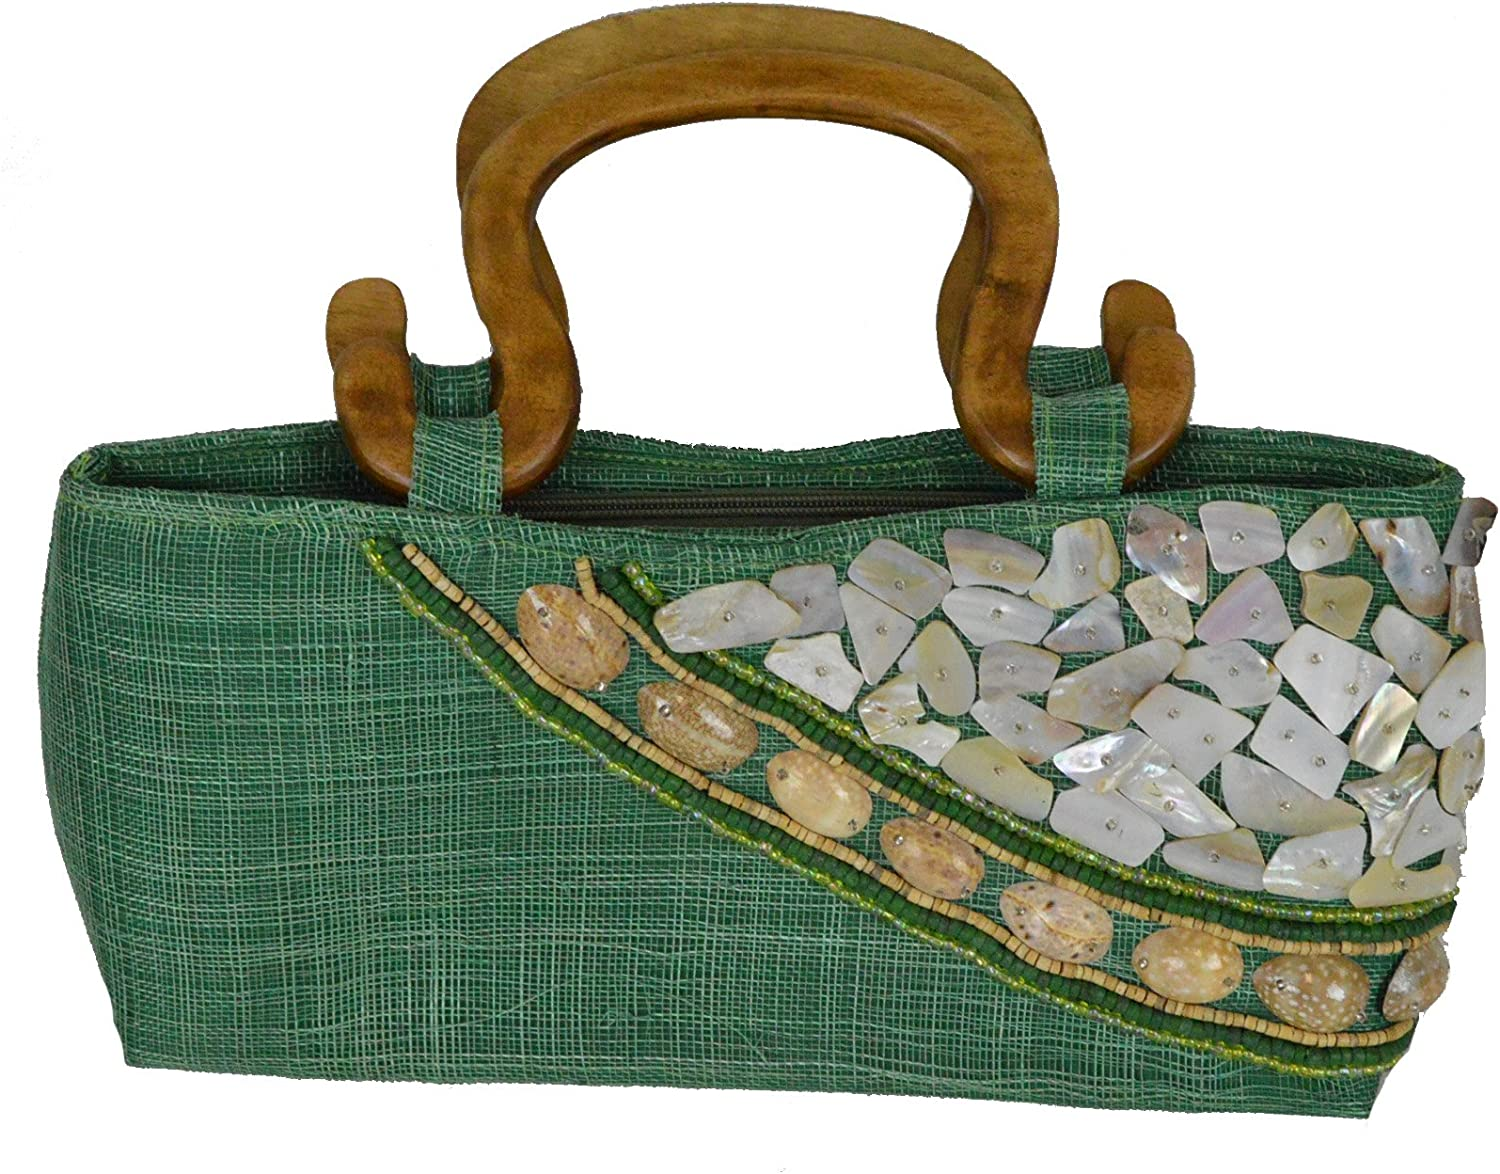 15 L Maui Emerald Green Small ToteStyle Handbag with Seashell and Beads Inlay and Double Wood Handles